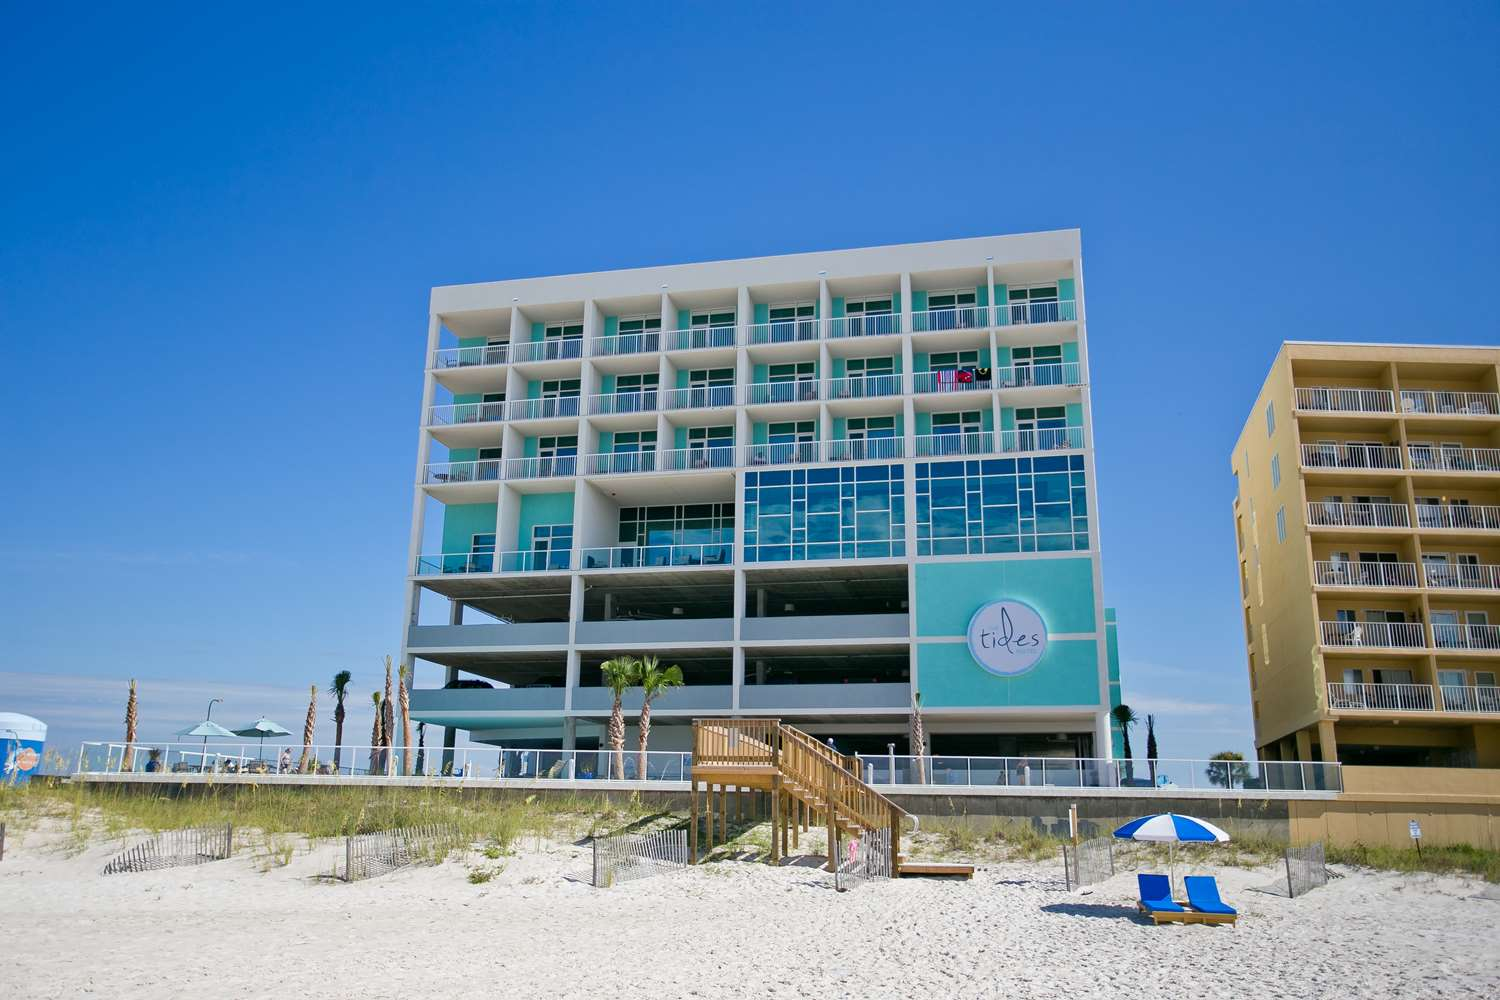 Best Western Premier The Tides Hotel Orange Beach, AL